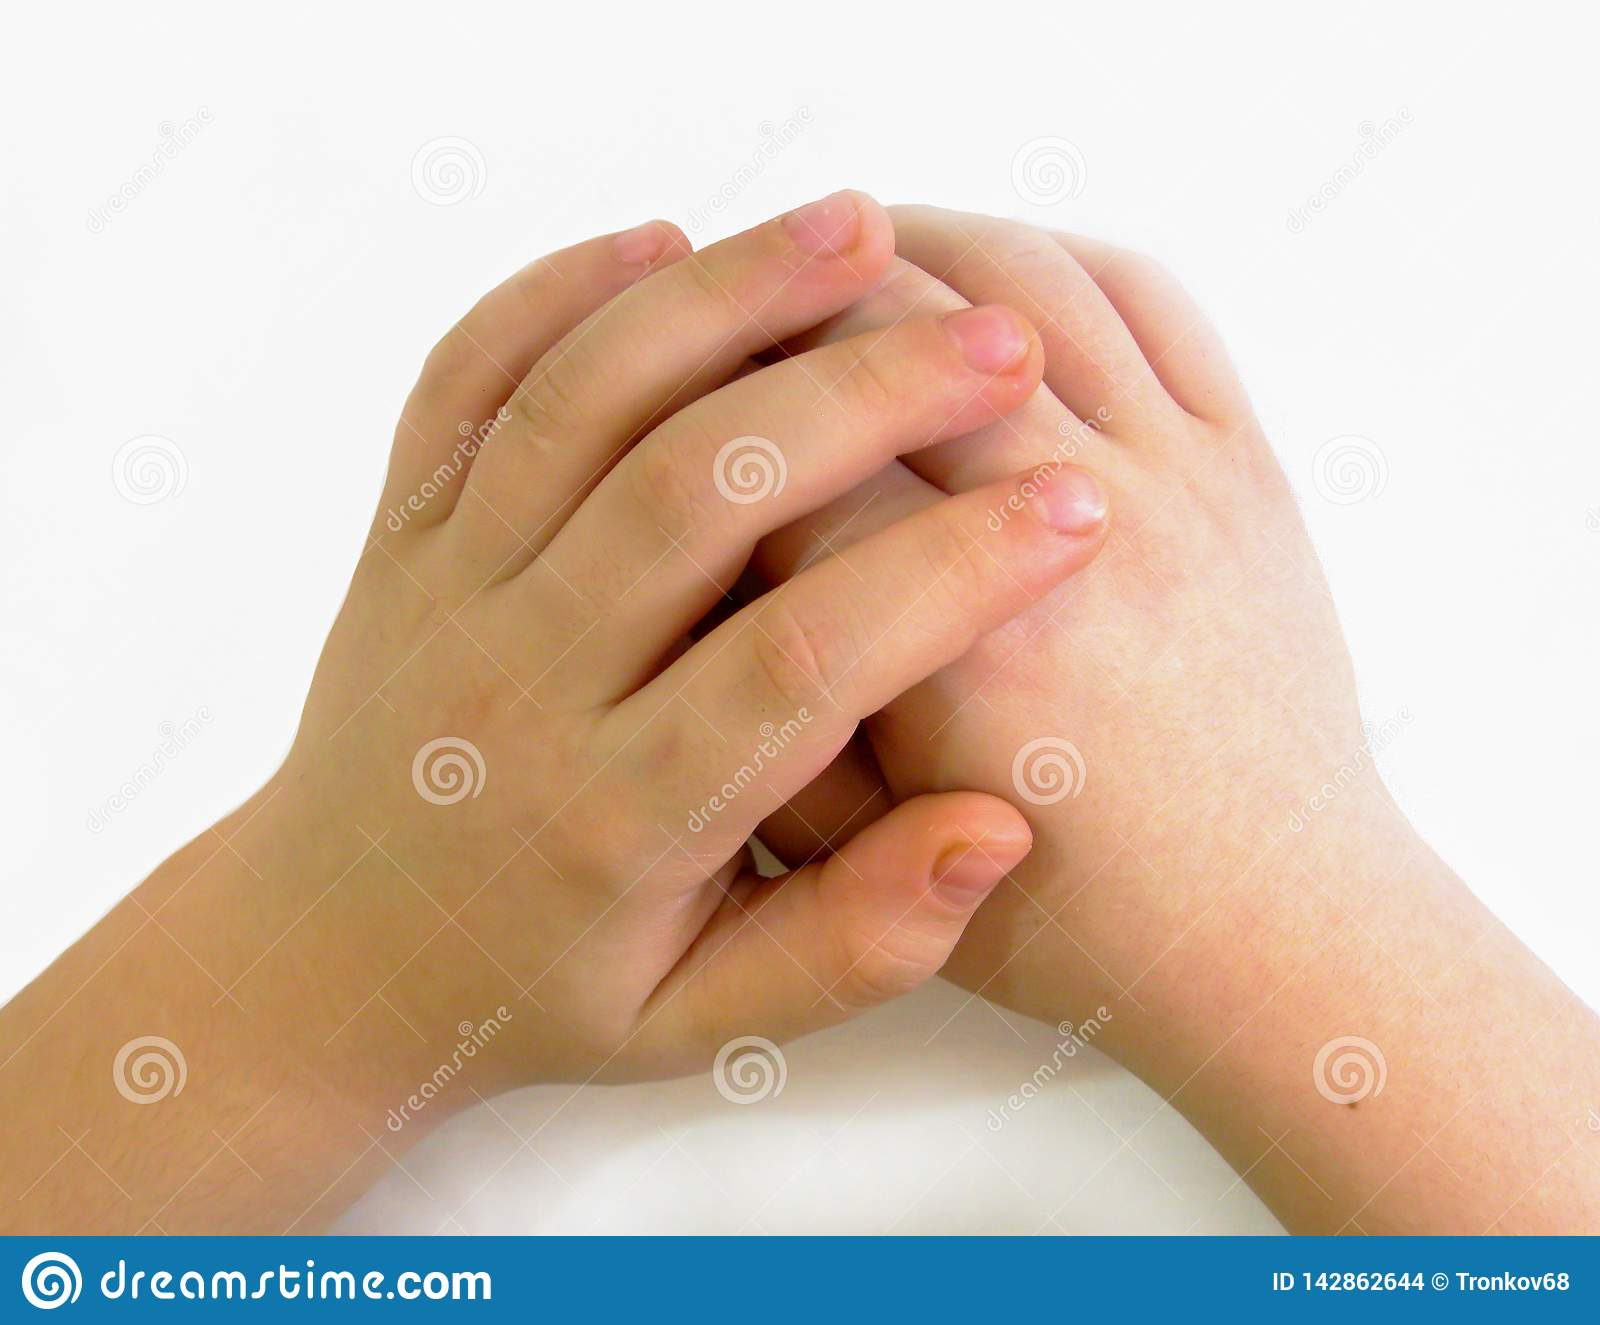 Human hands are one of the most expressive parts of the body.